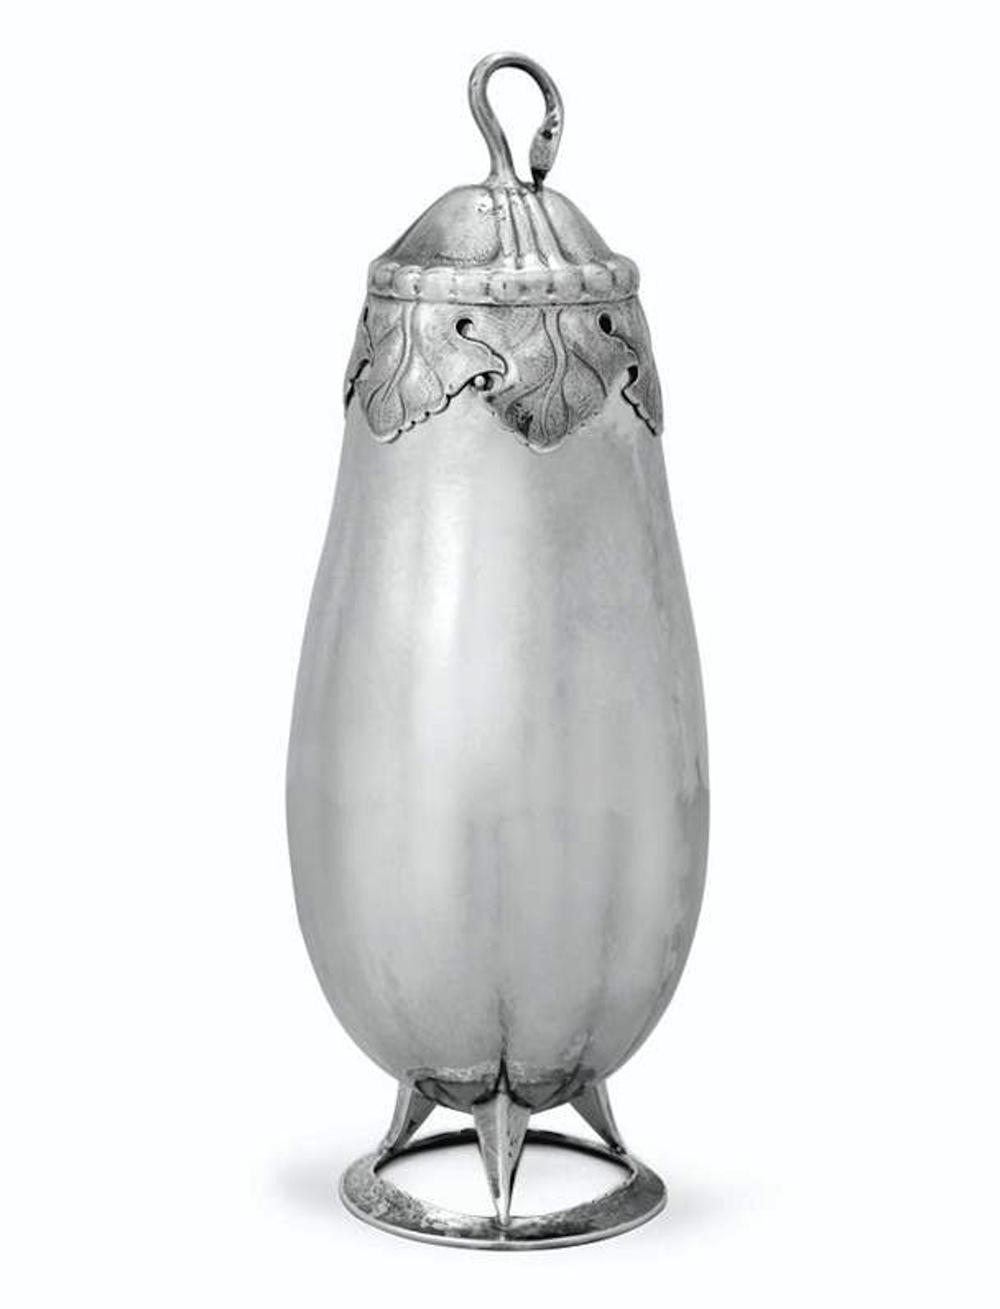 Peer Smed, Brooklyn New York.  Cocktail shaker, 1934.